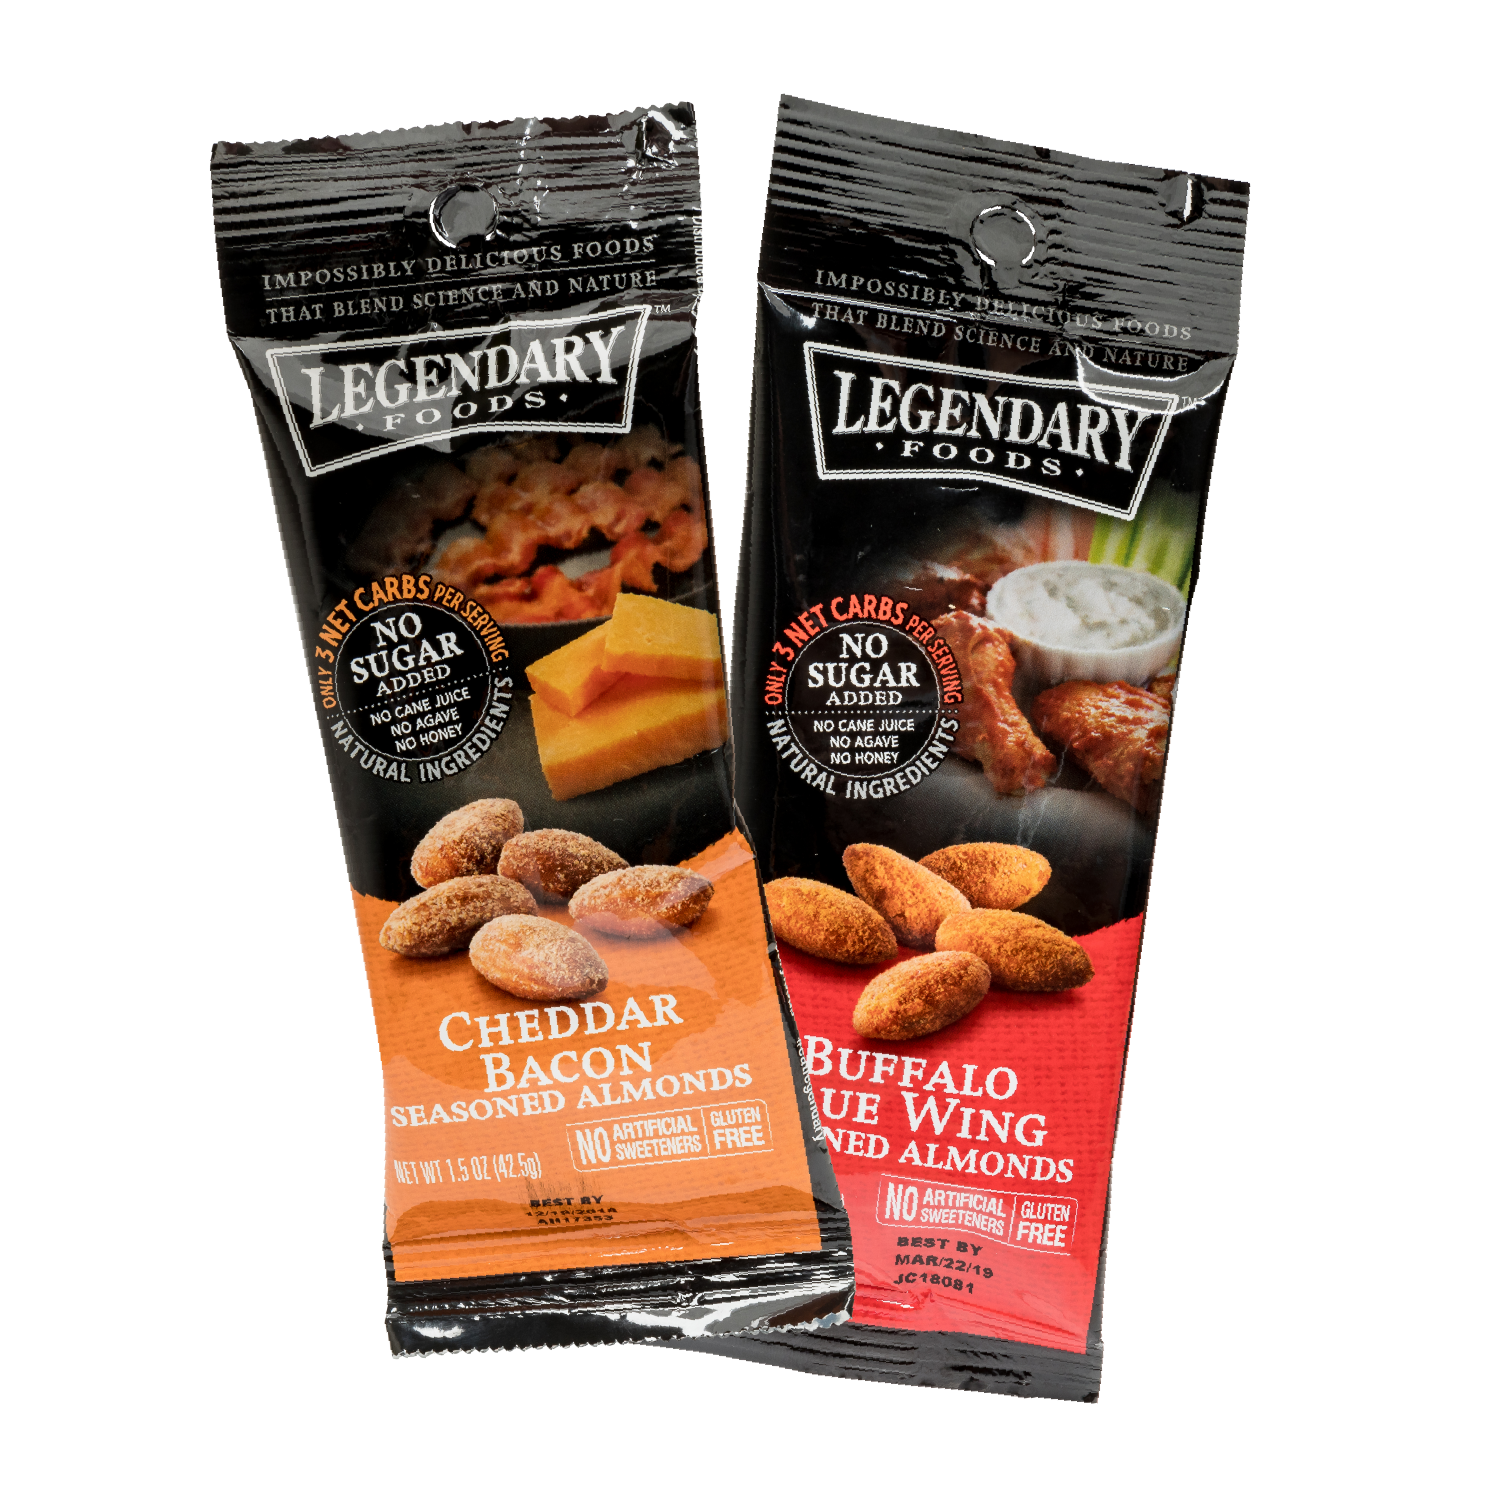 Legendary Foods Nuts